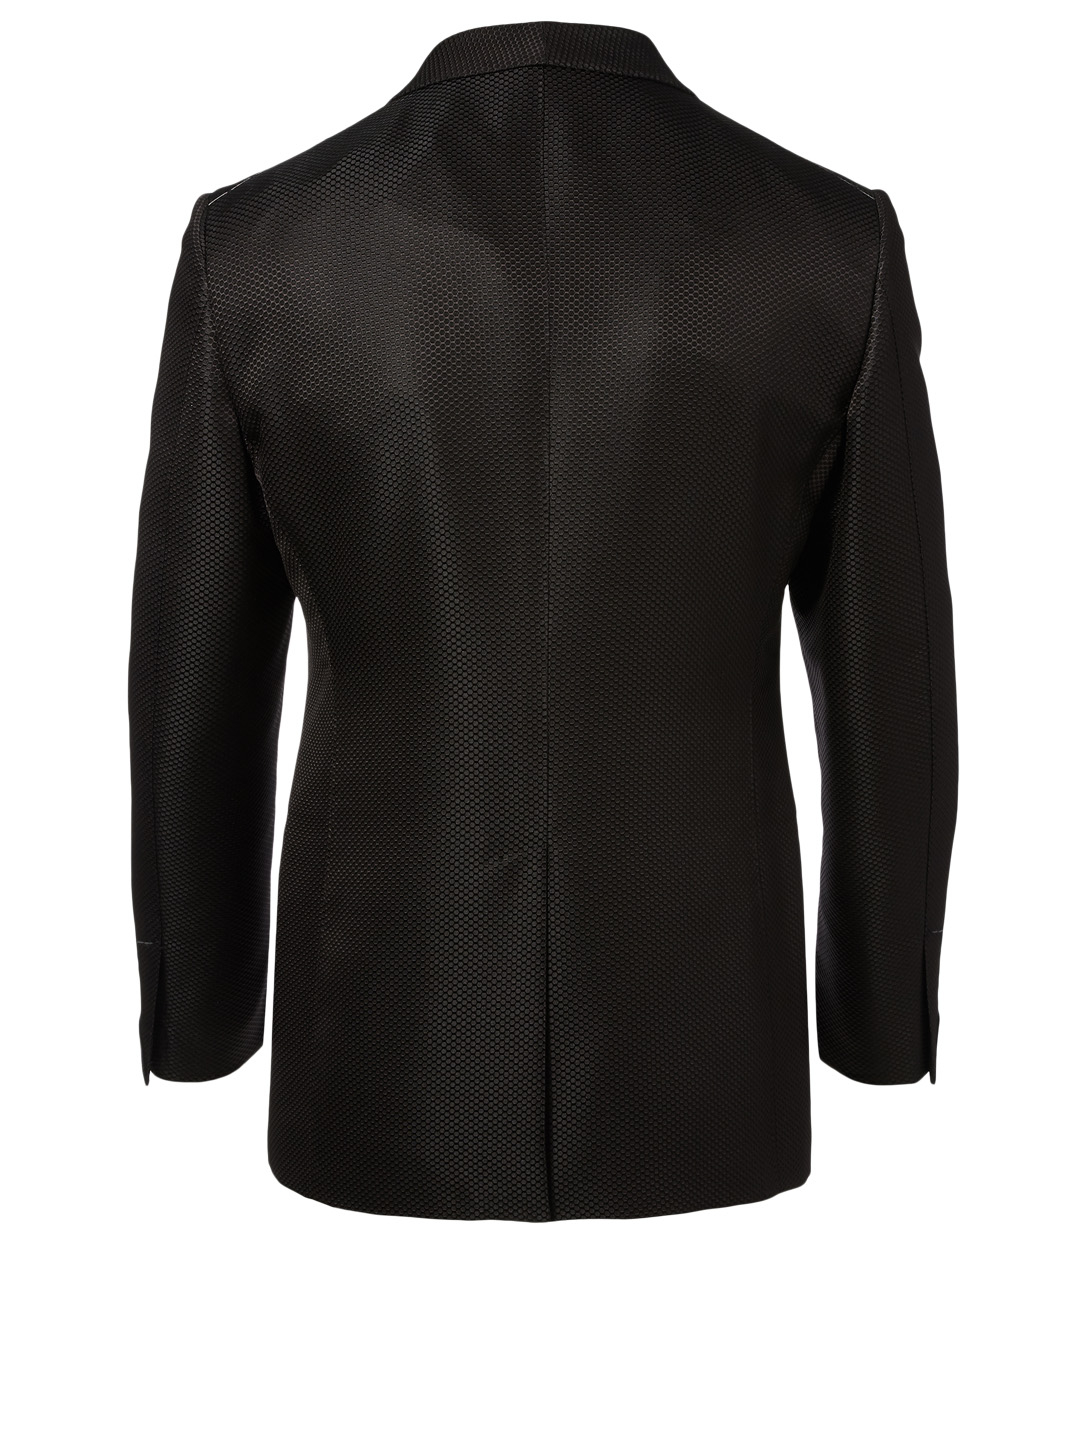 TOM FORD Honeycomb Cocktail Jacket Men's Black